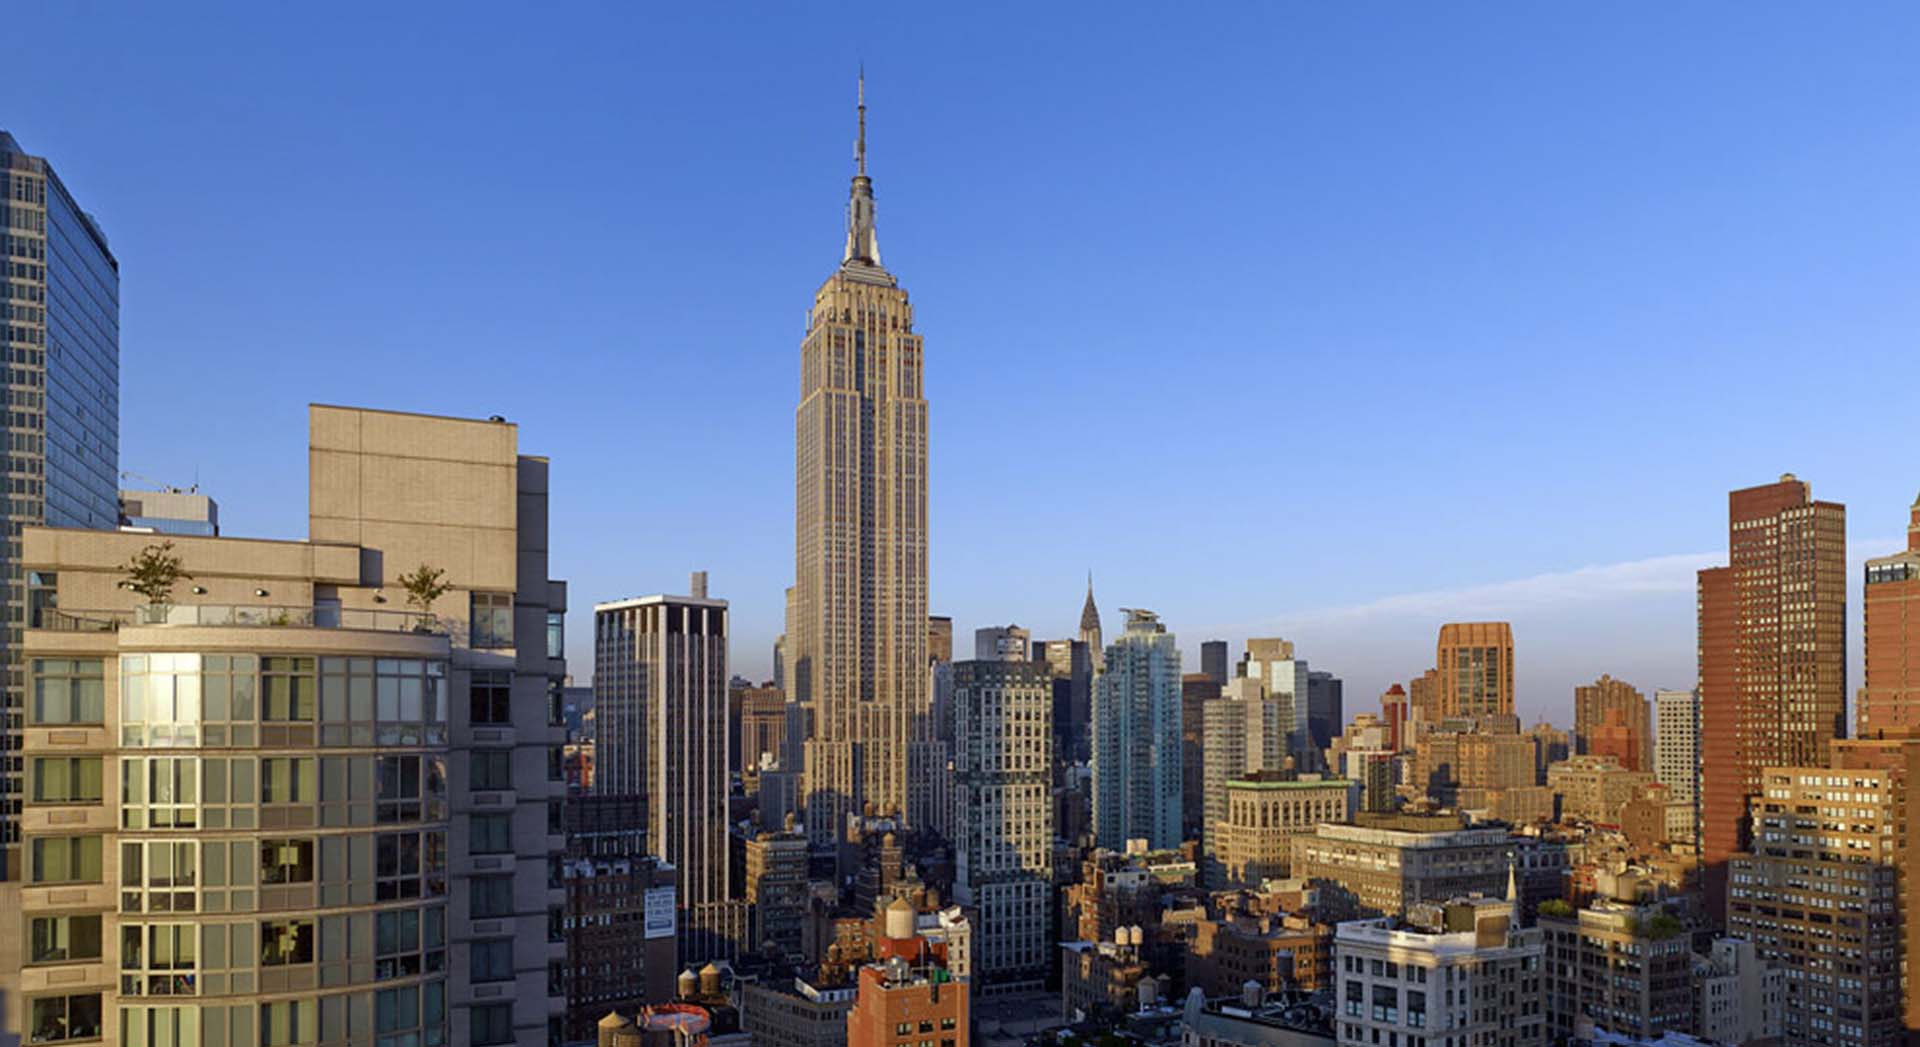 rooftop view of manhattan looking uptown during the day with clear skies and empire state building